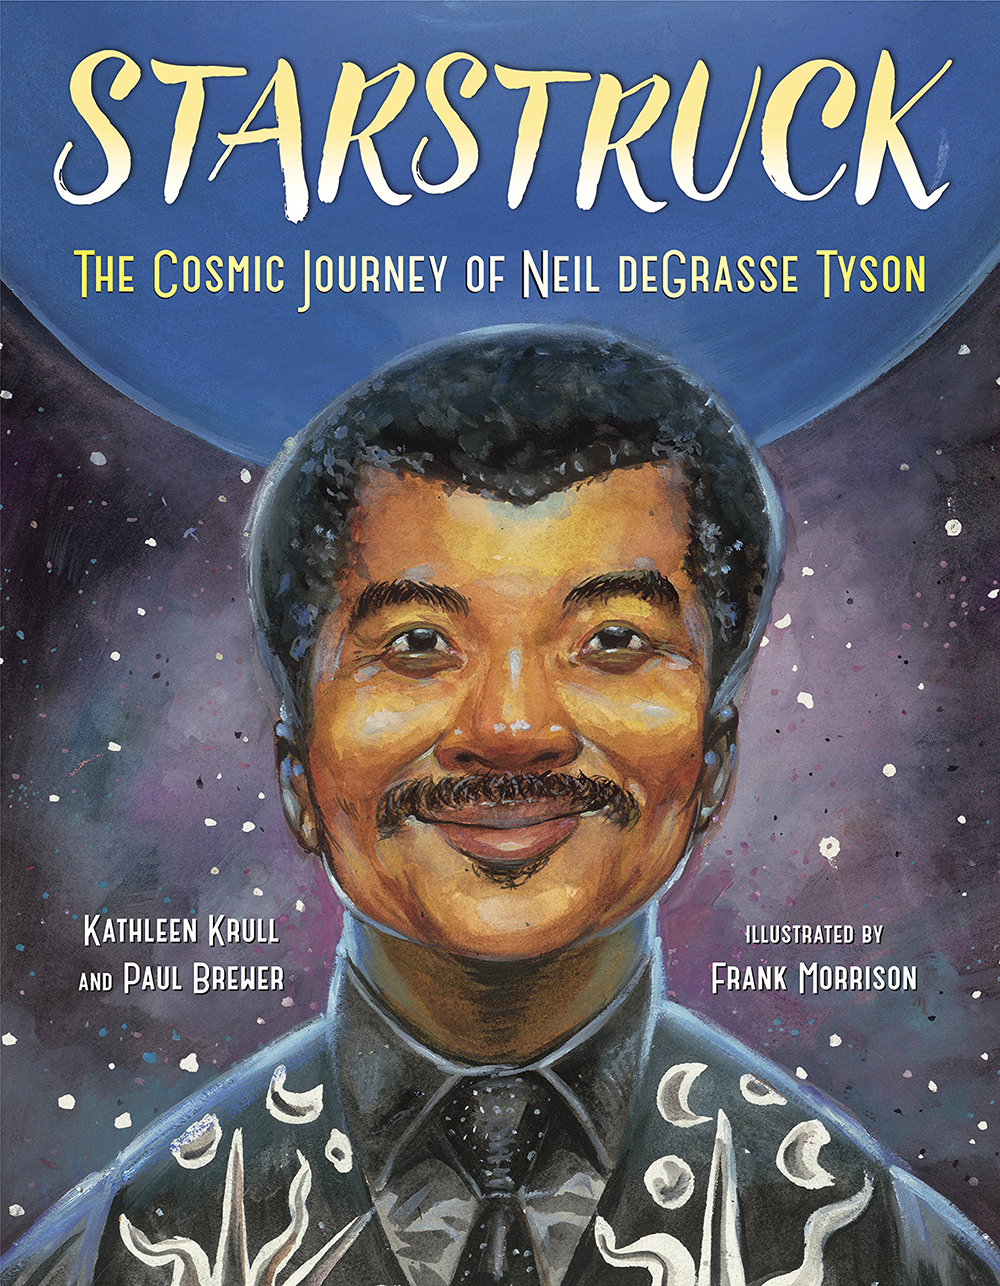 10 Black History Books for Bedtime